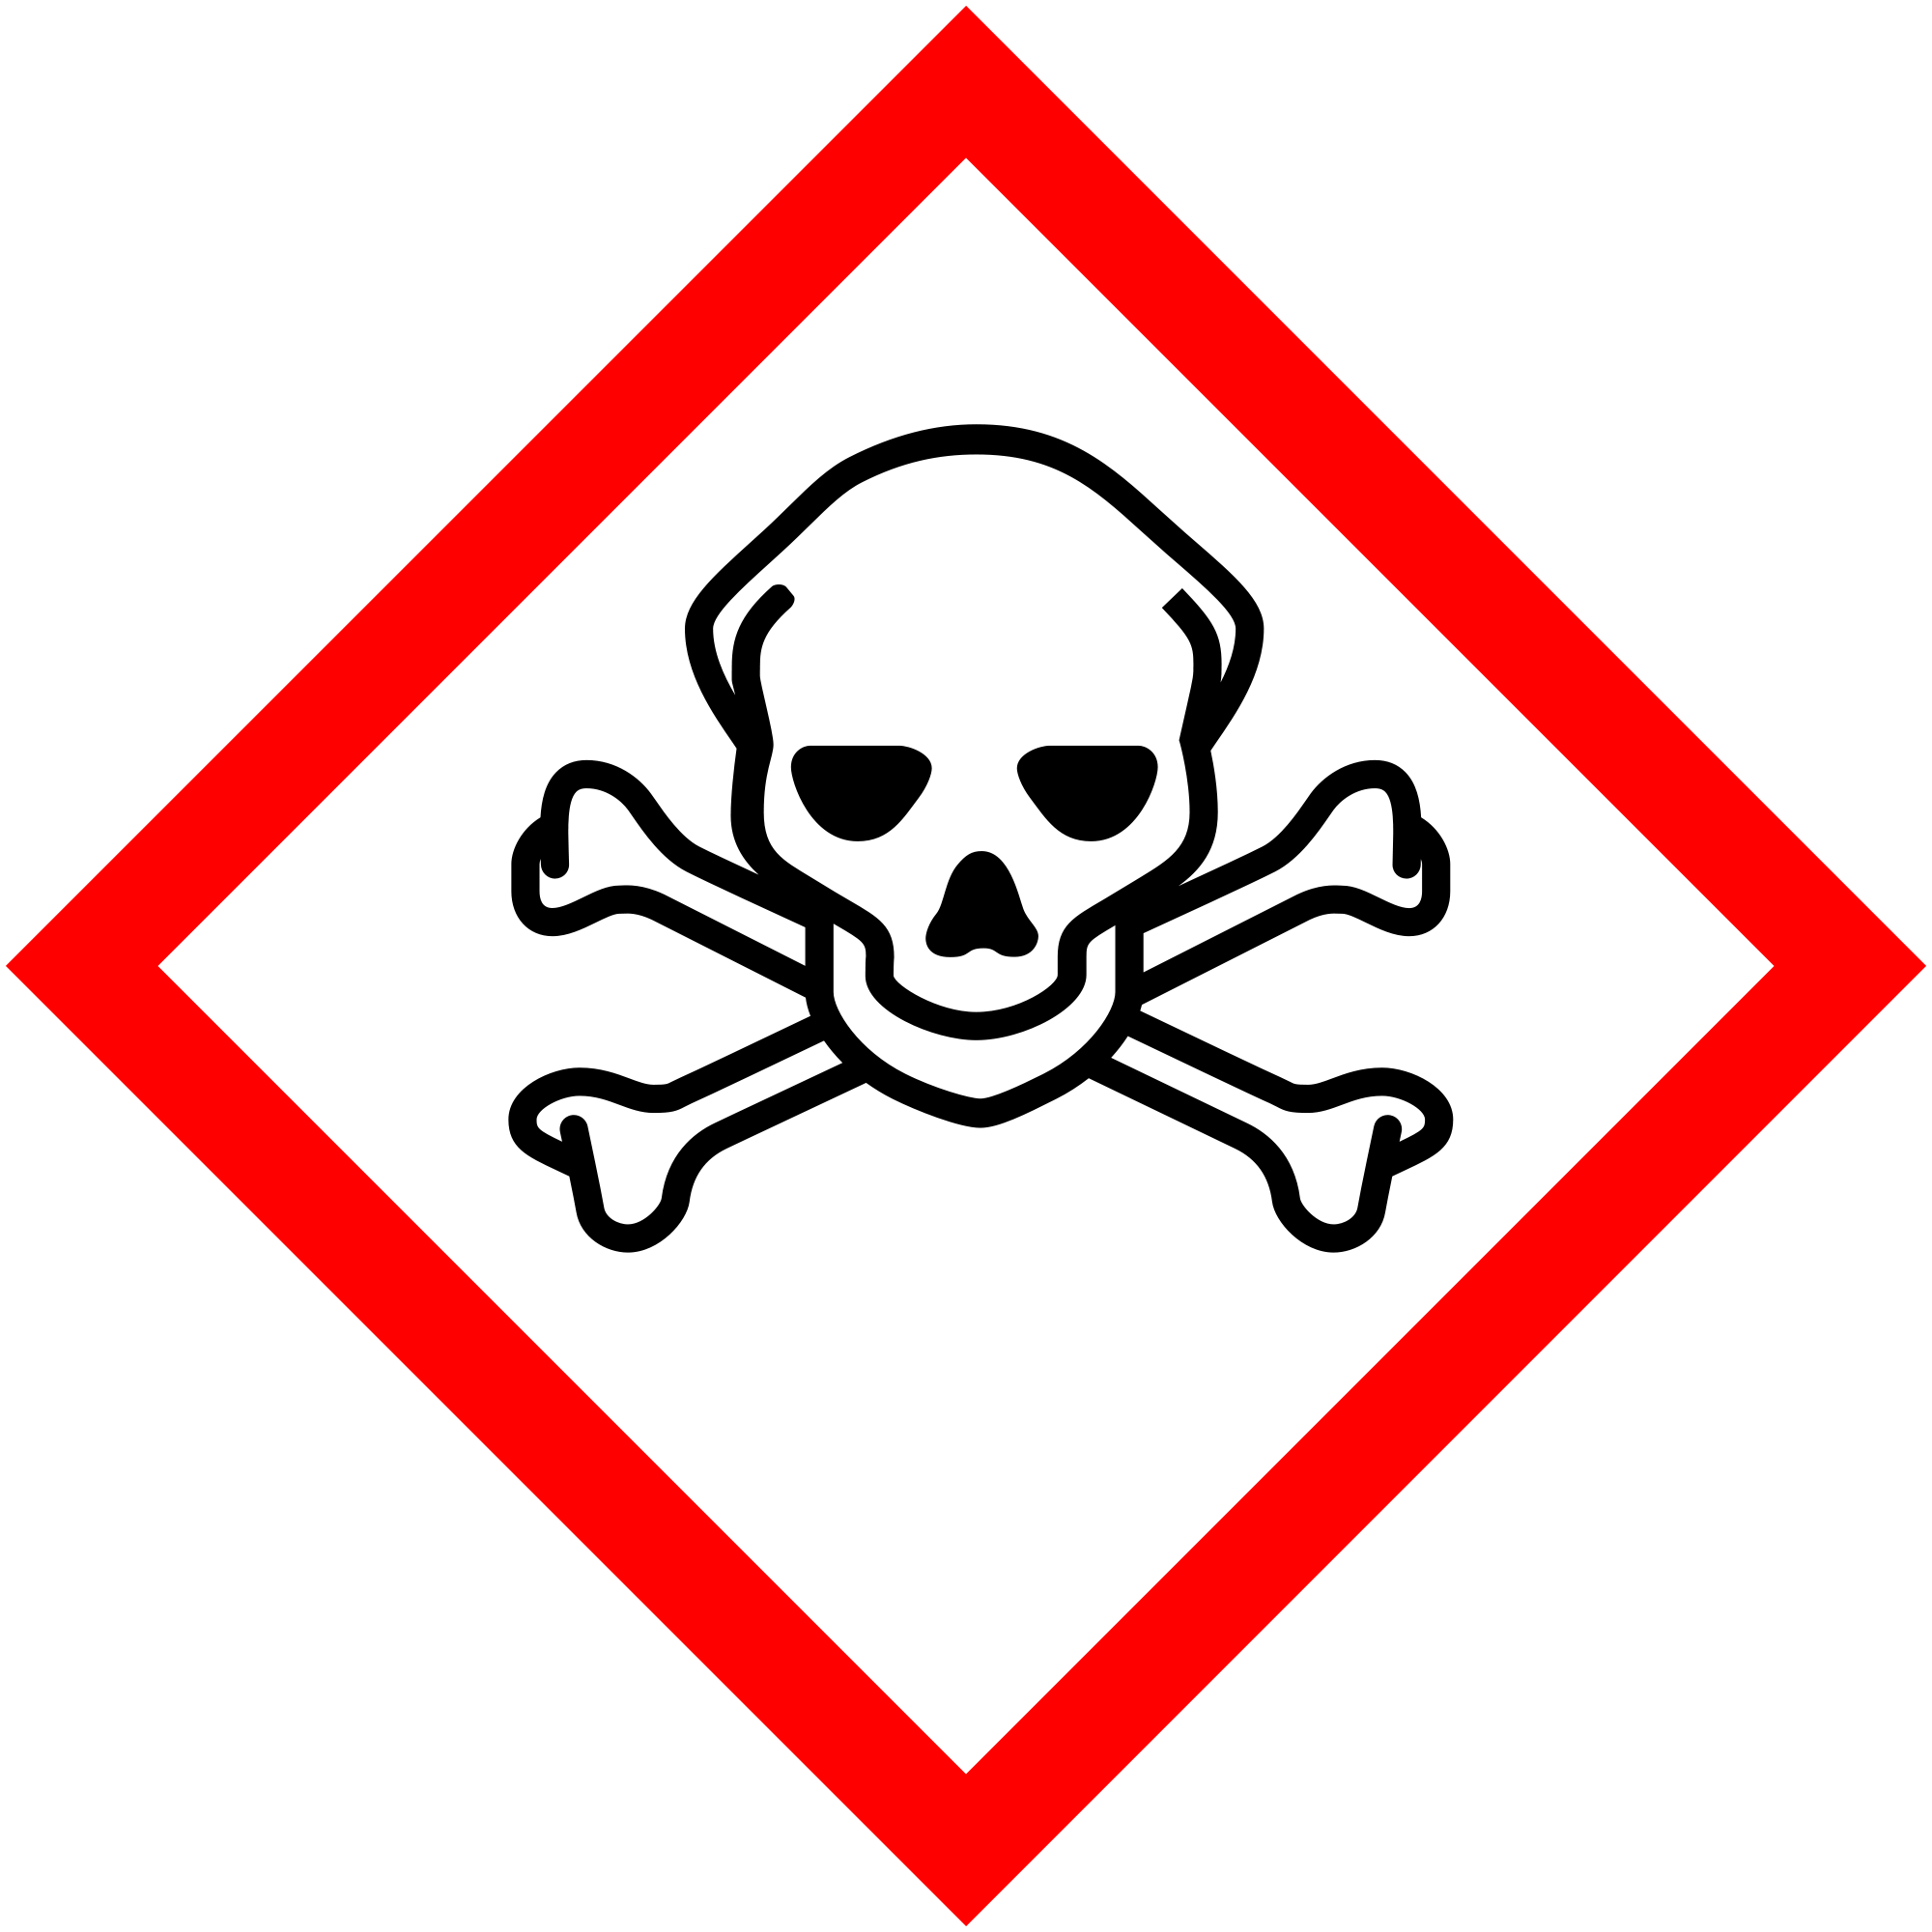 Toxic Chemical PNG - 58474